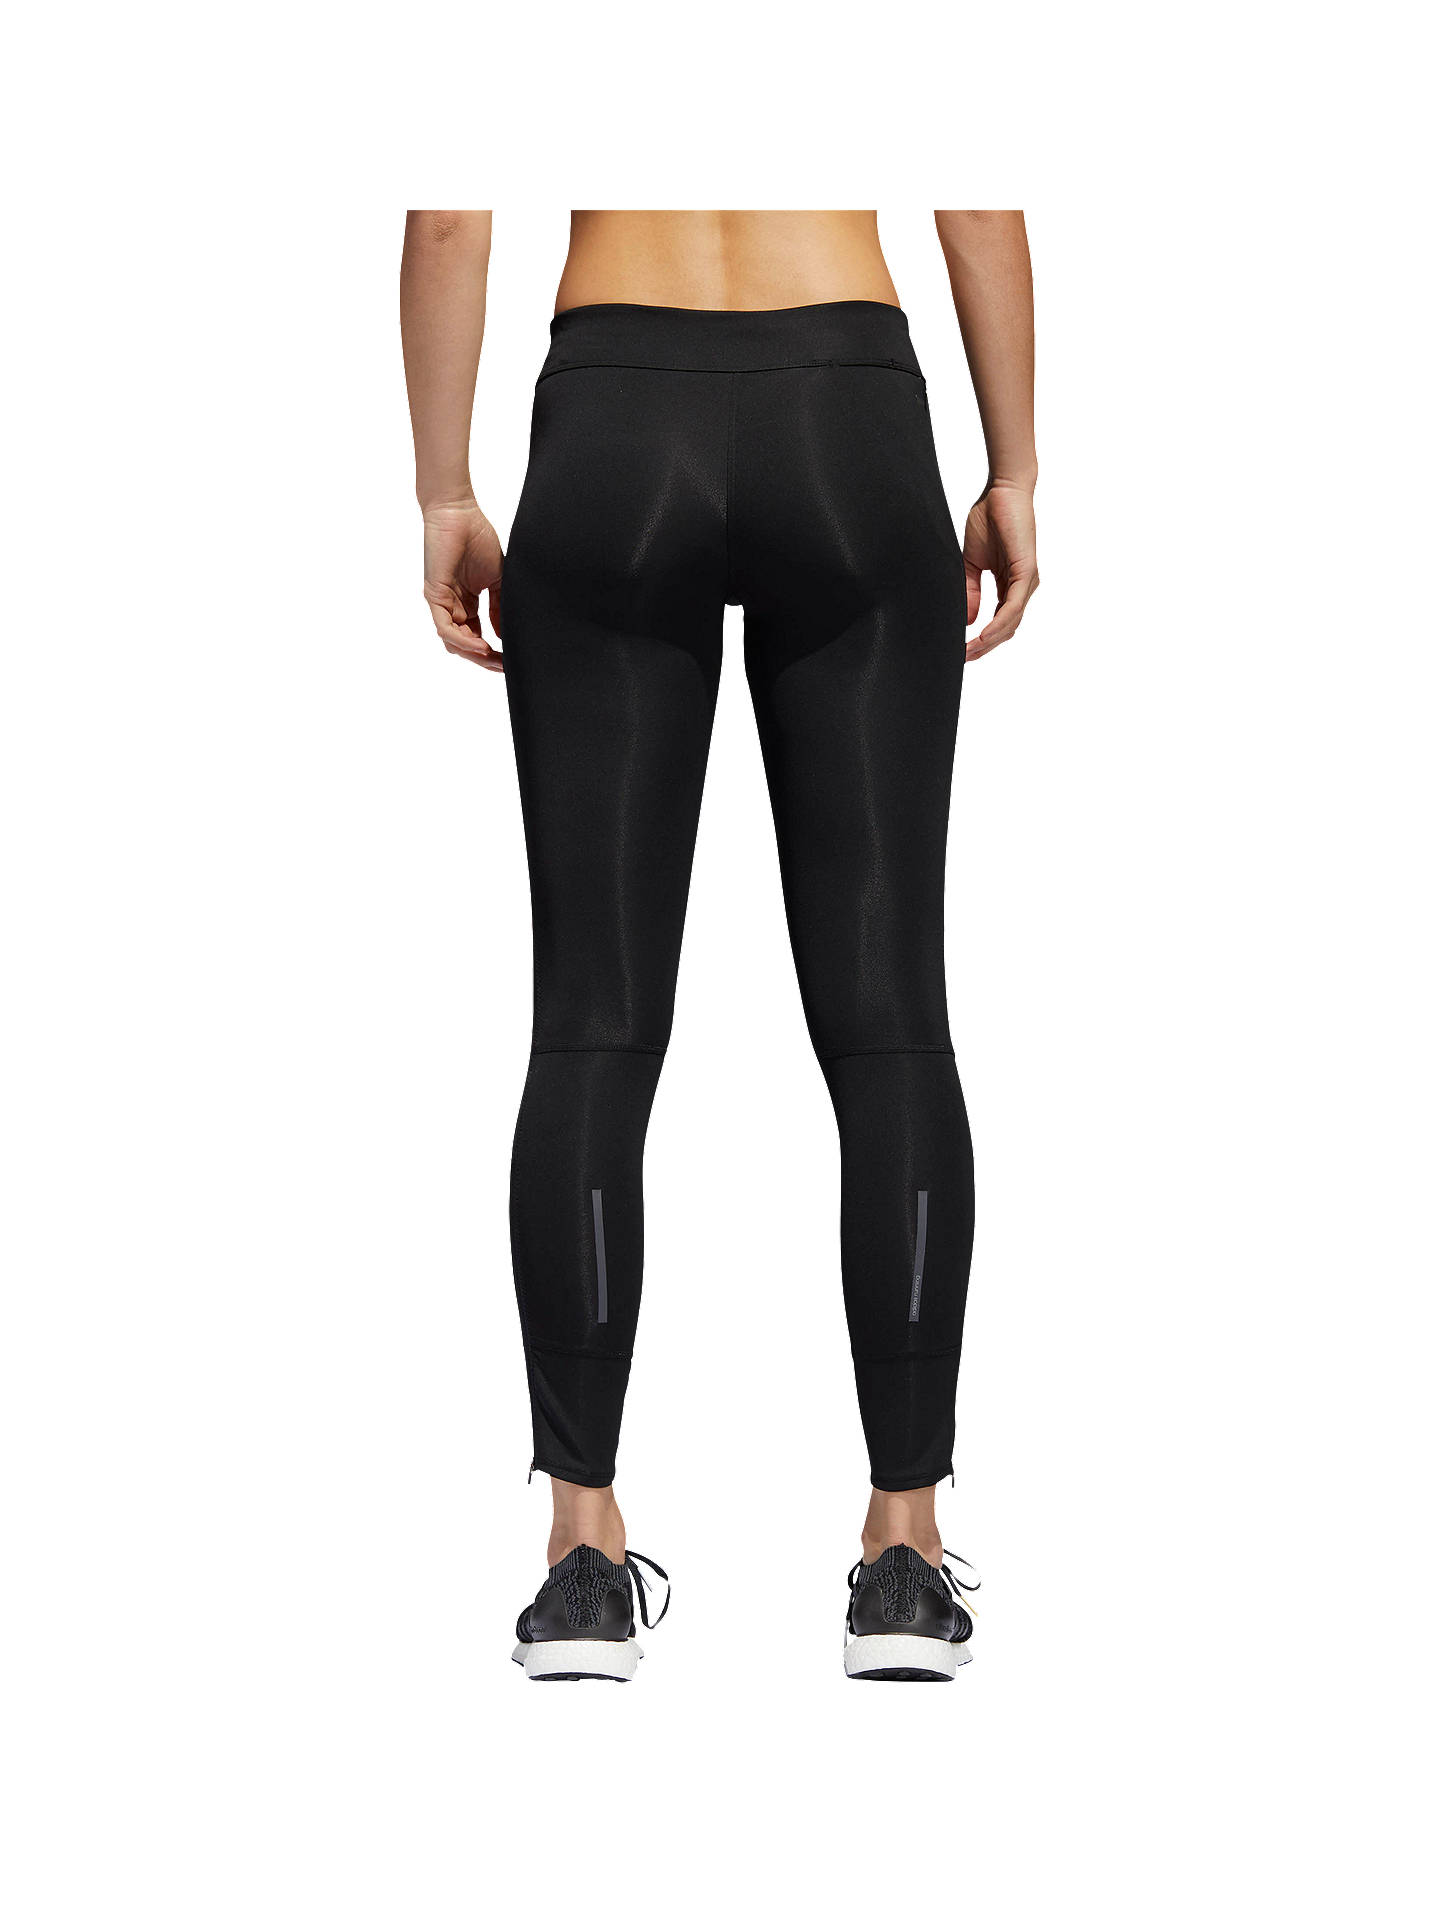 153c7b83773 ... Buy adidas Response Long Running Tights, Black, XS Online at  johnlewis.com ...